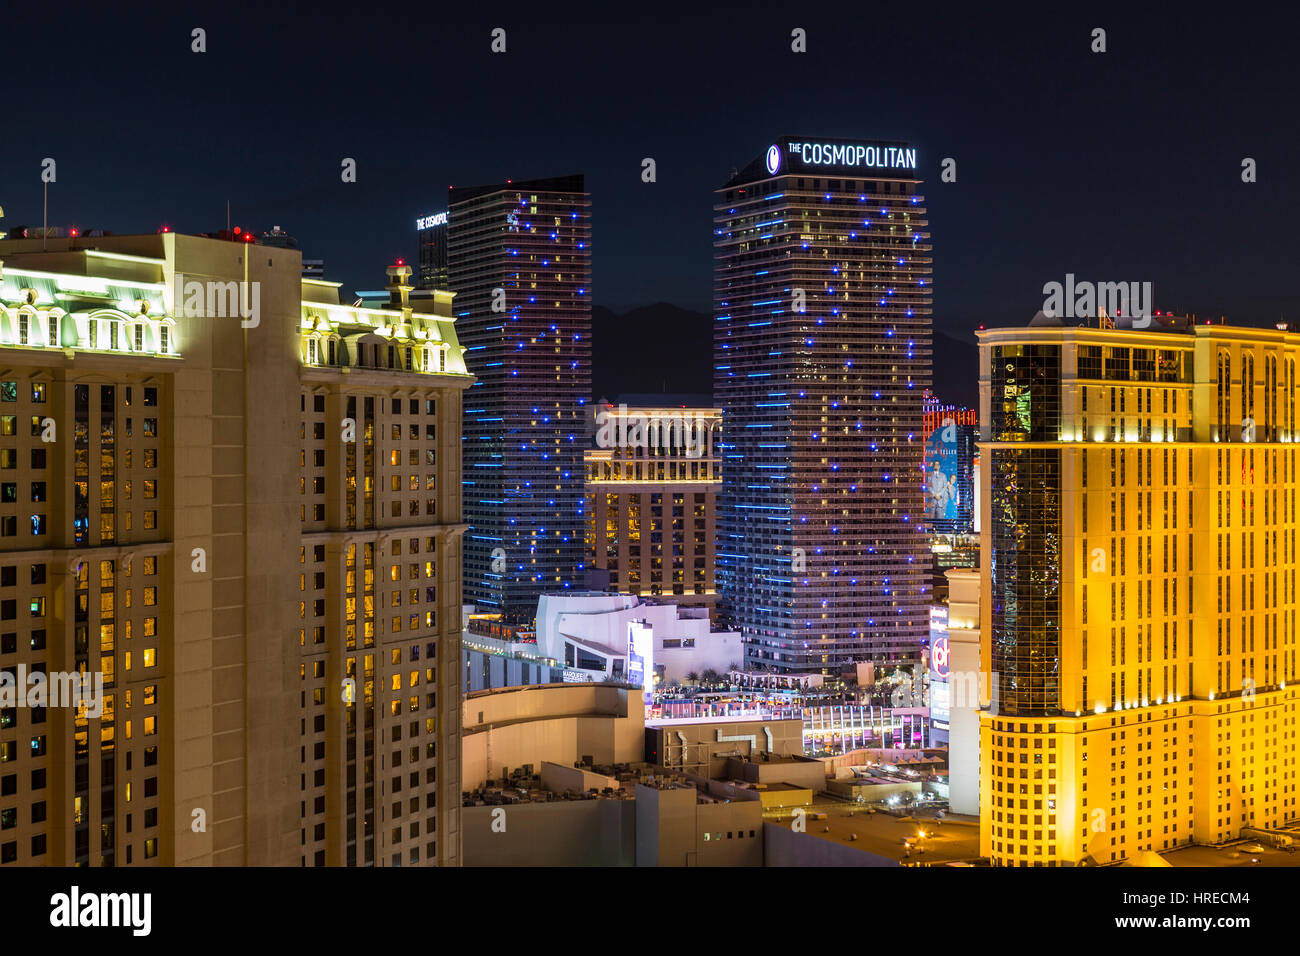 Las Vegas, Nevada, USA - Le 23 mars 2015 et les autres : Cosmopolitan Las Vegas strip resort towers dans la Photo Stock